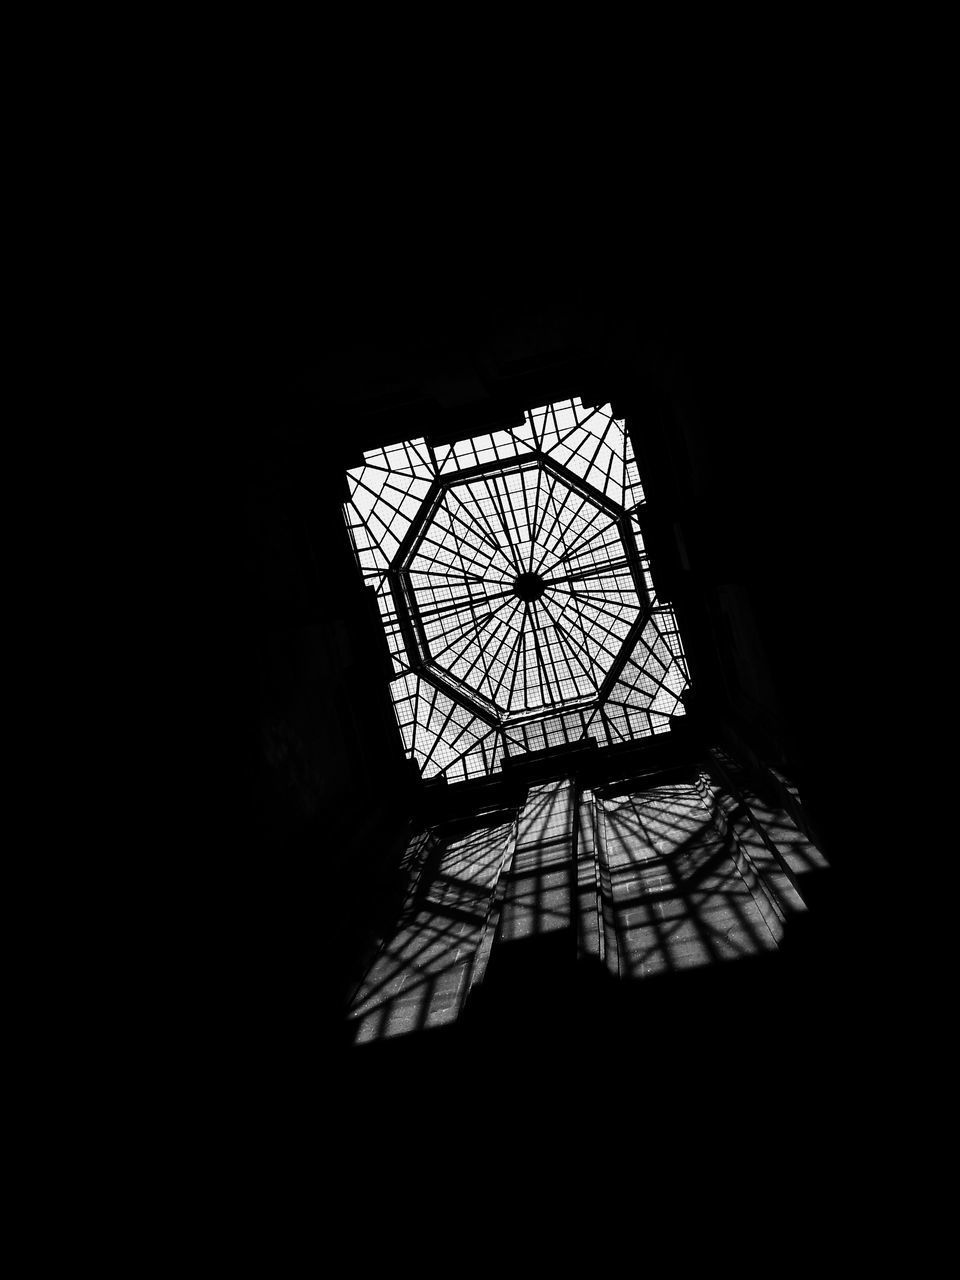 copy space, indoors, no people, architecture, silhouette, built structure, pattern, nature, low angle view, dark, window, day, building, sky, sunlight, close-up, metal, focus on shadow